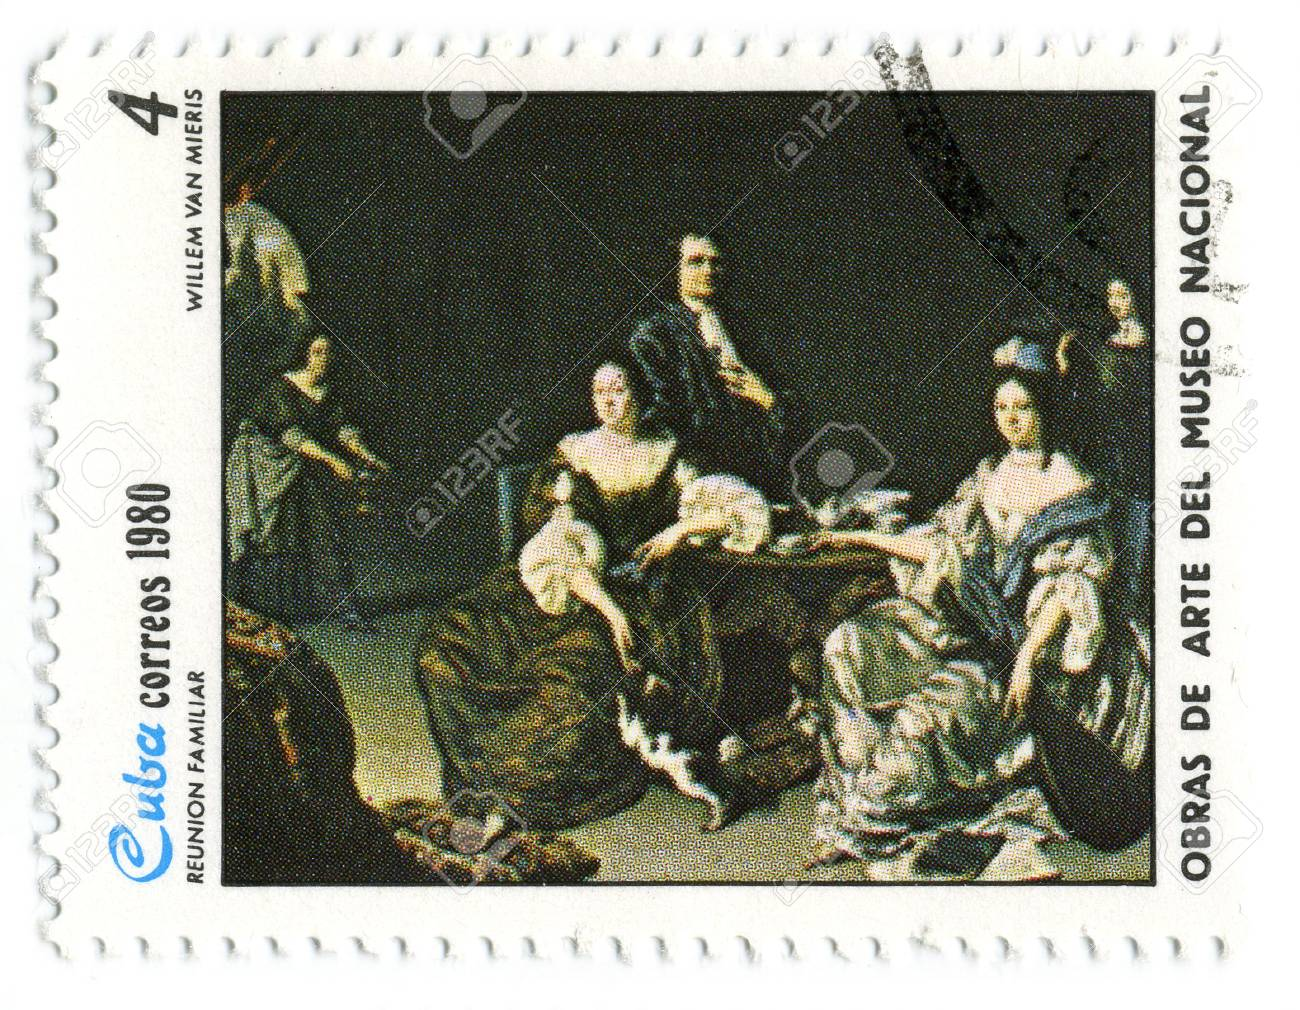 CUBA - CIRCA 1980: A stamp printed in CUBA shows paint by WILLEM Van MIERIS